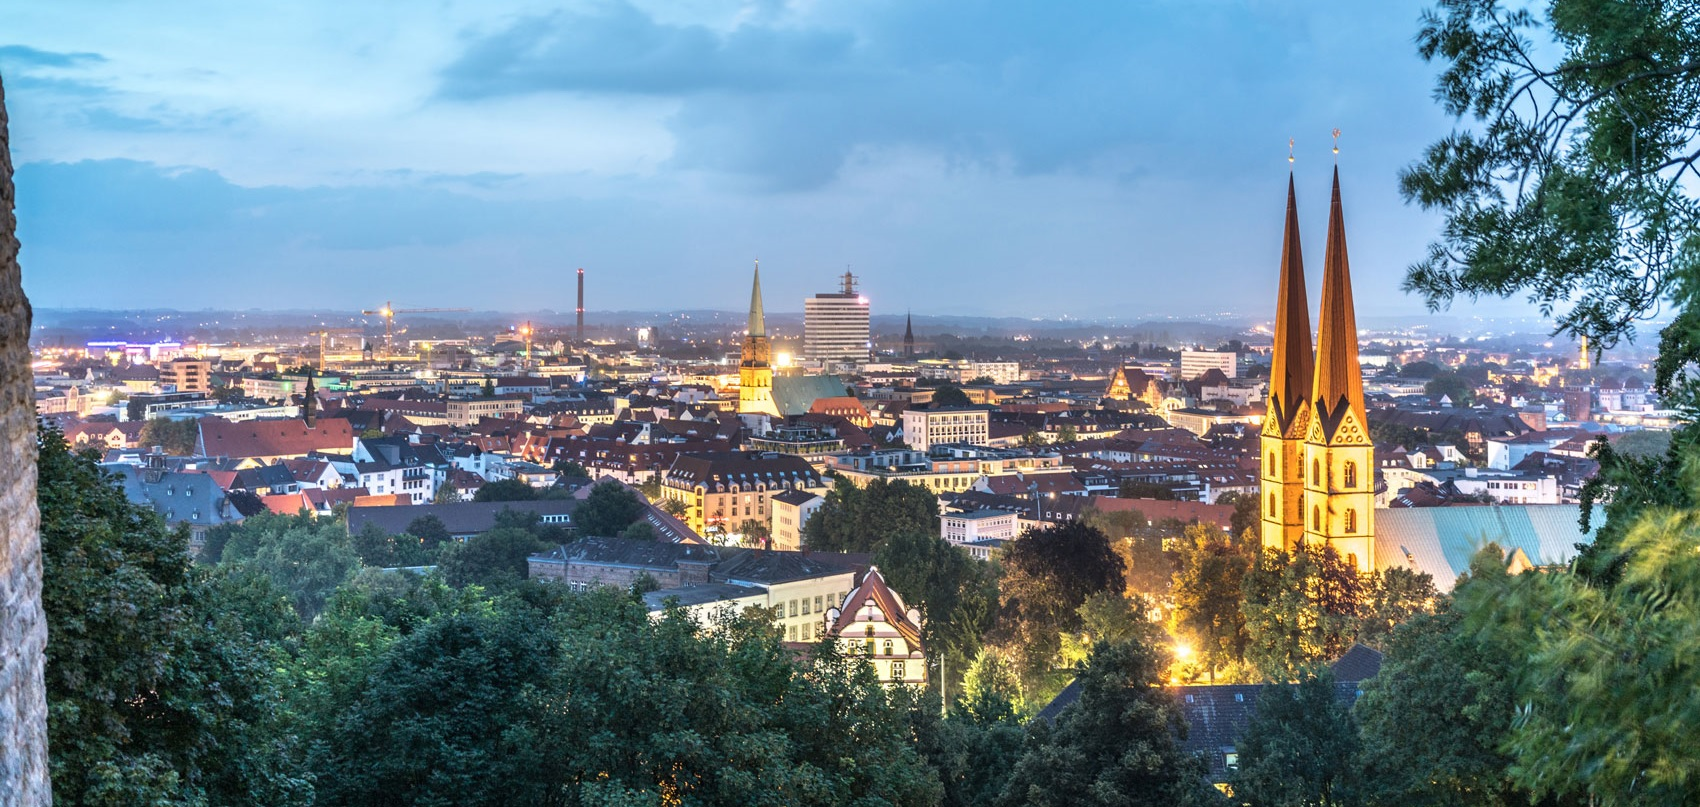 View on Bielefeld at dusk